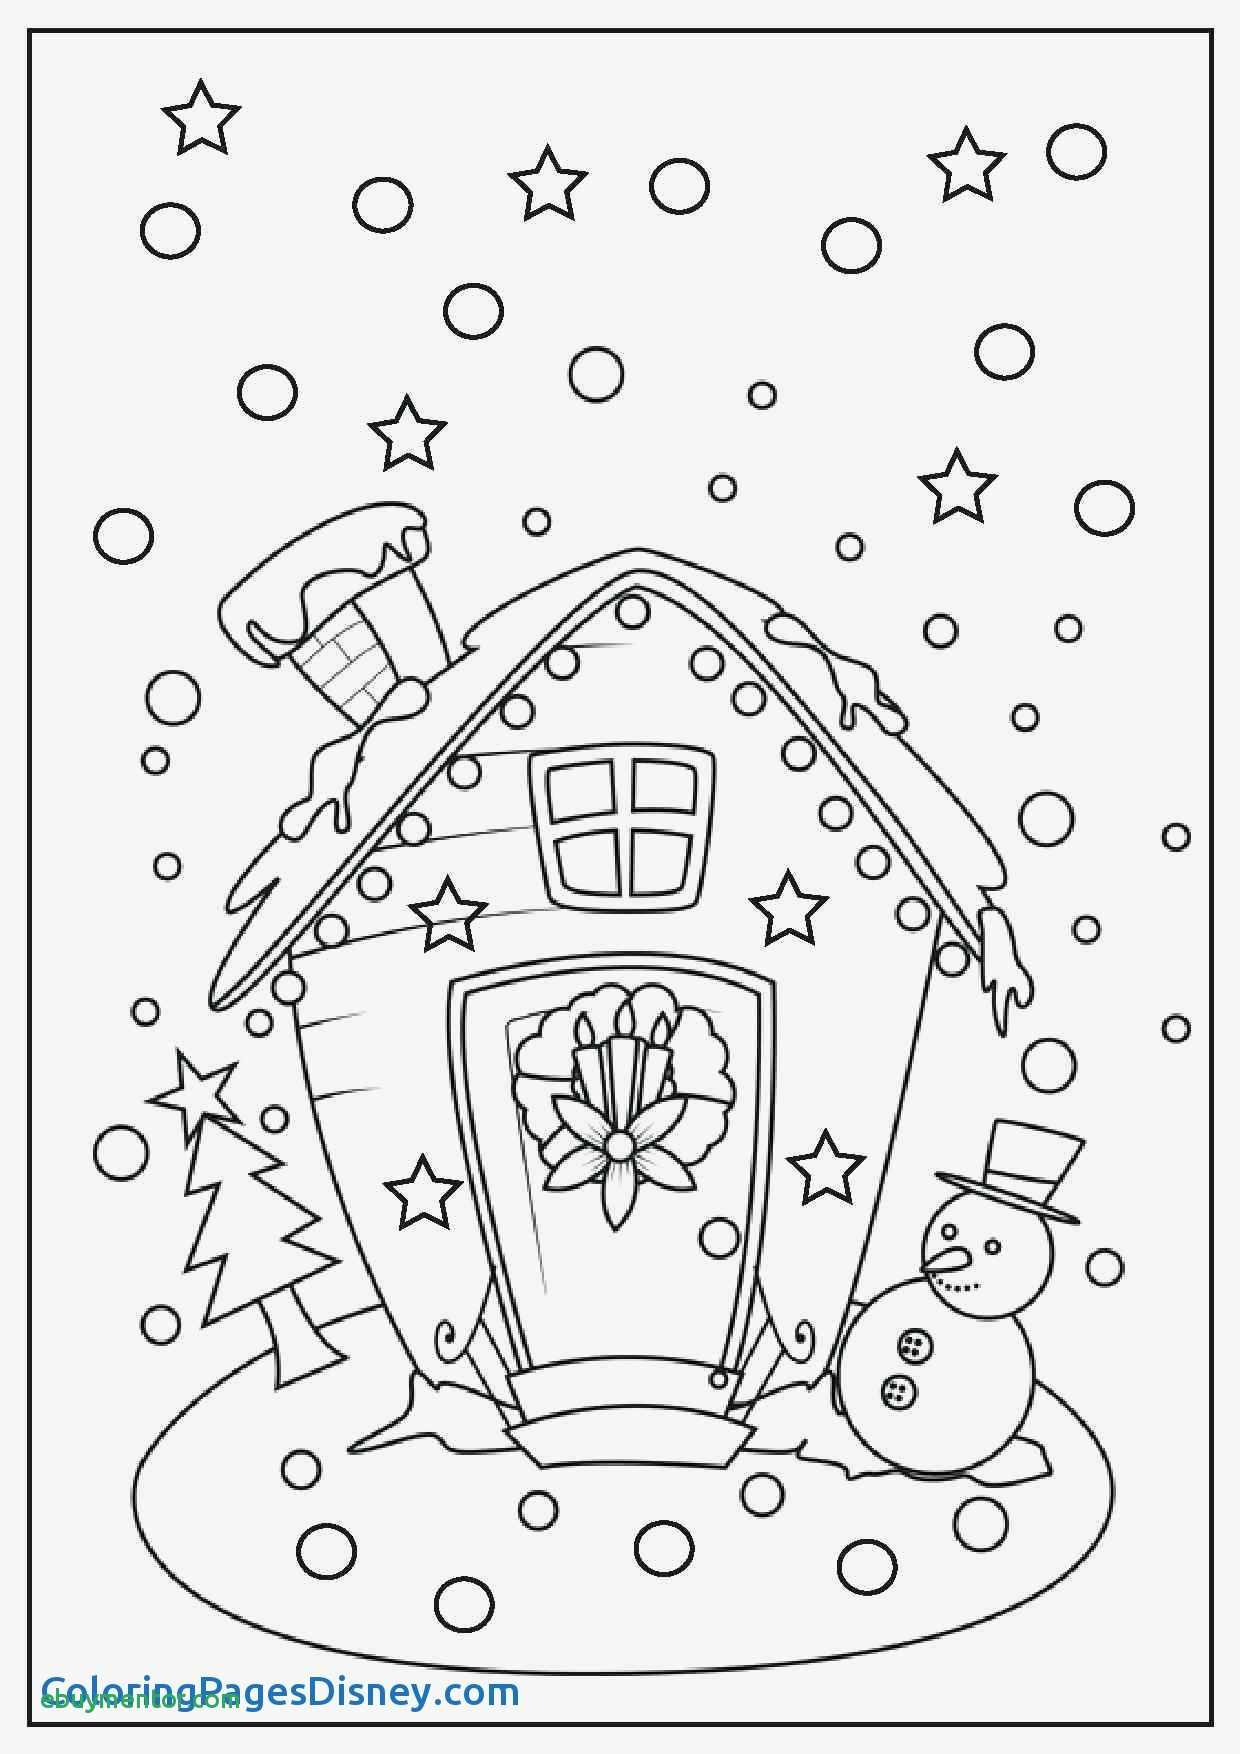 Electricity Coloring Pages To Print